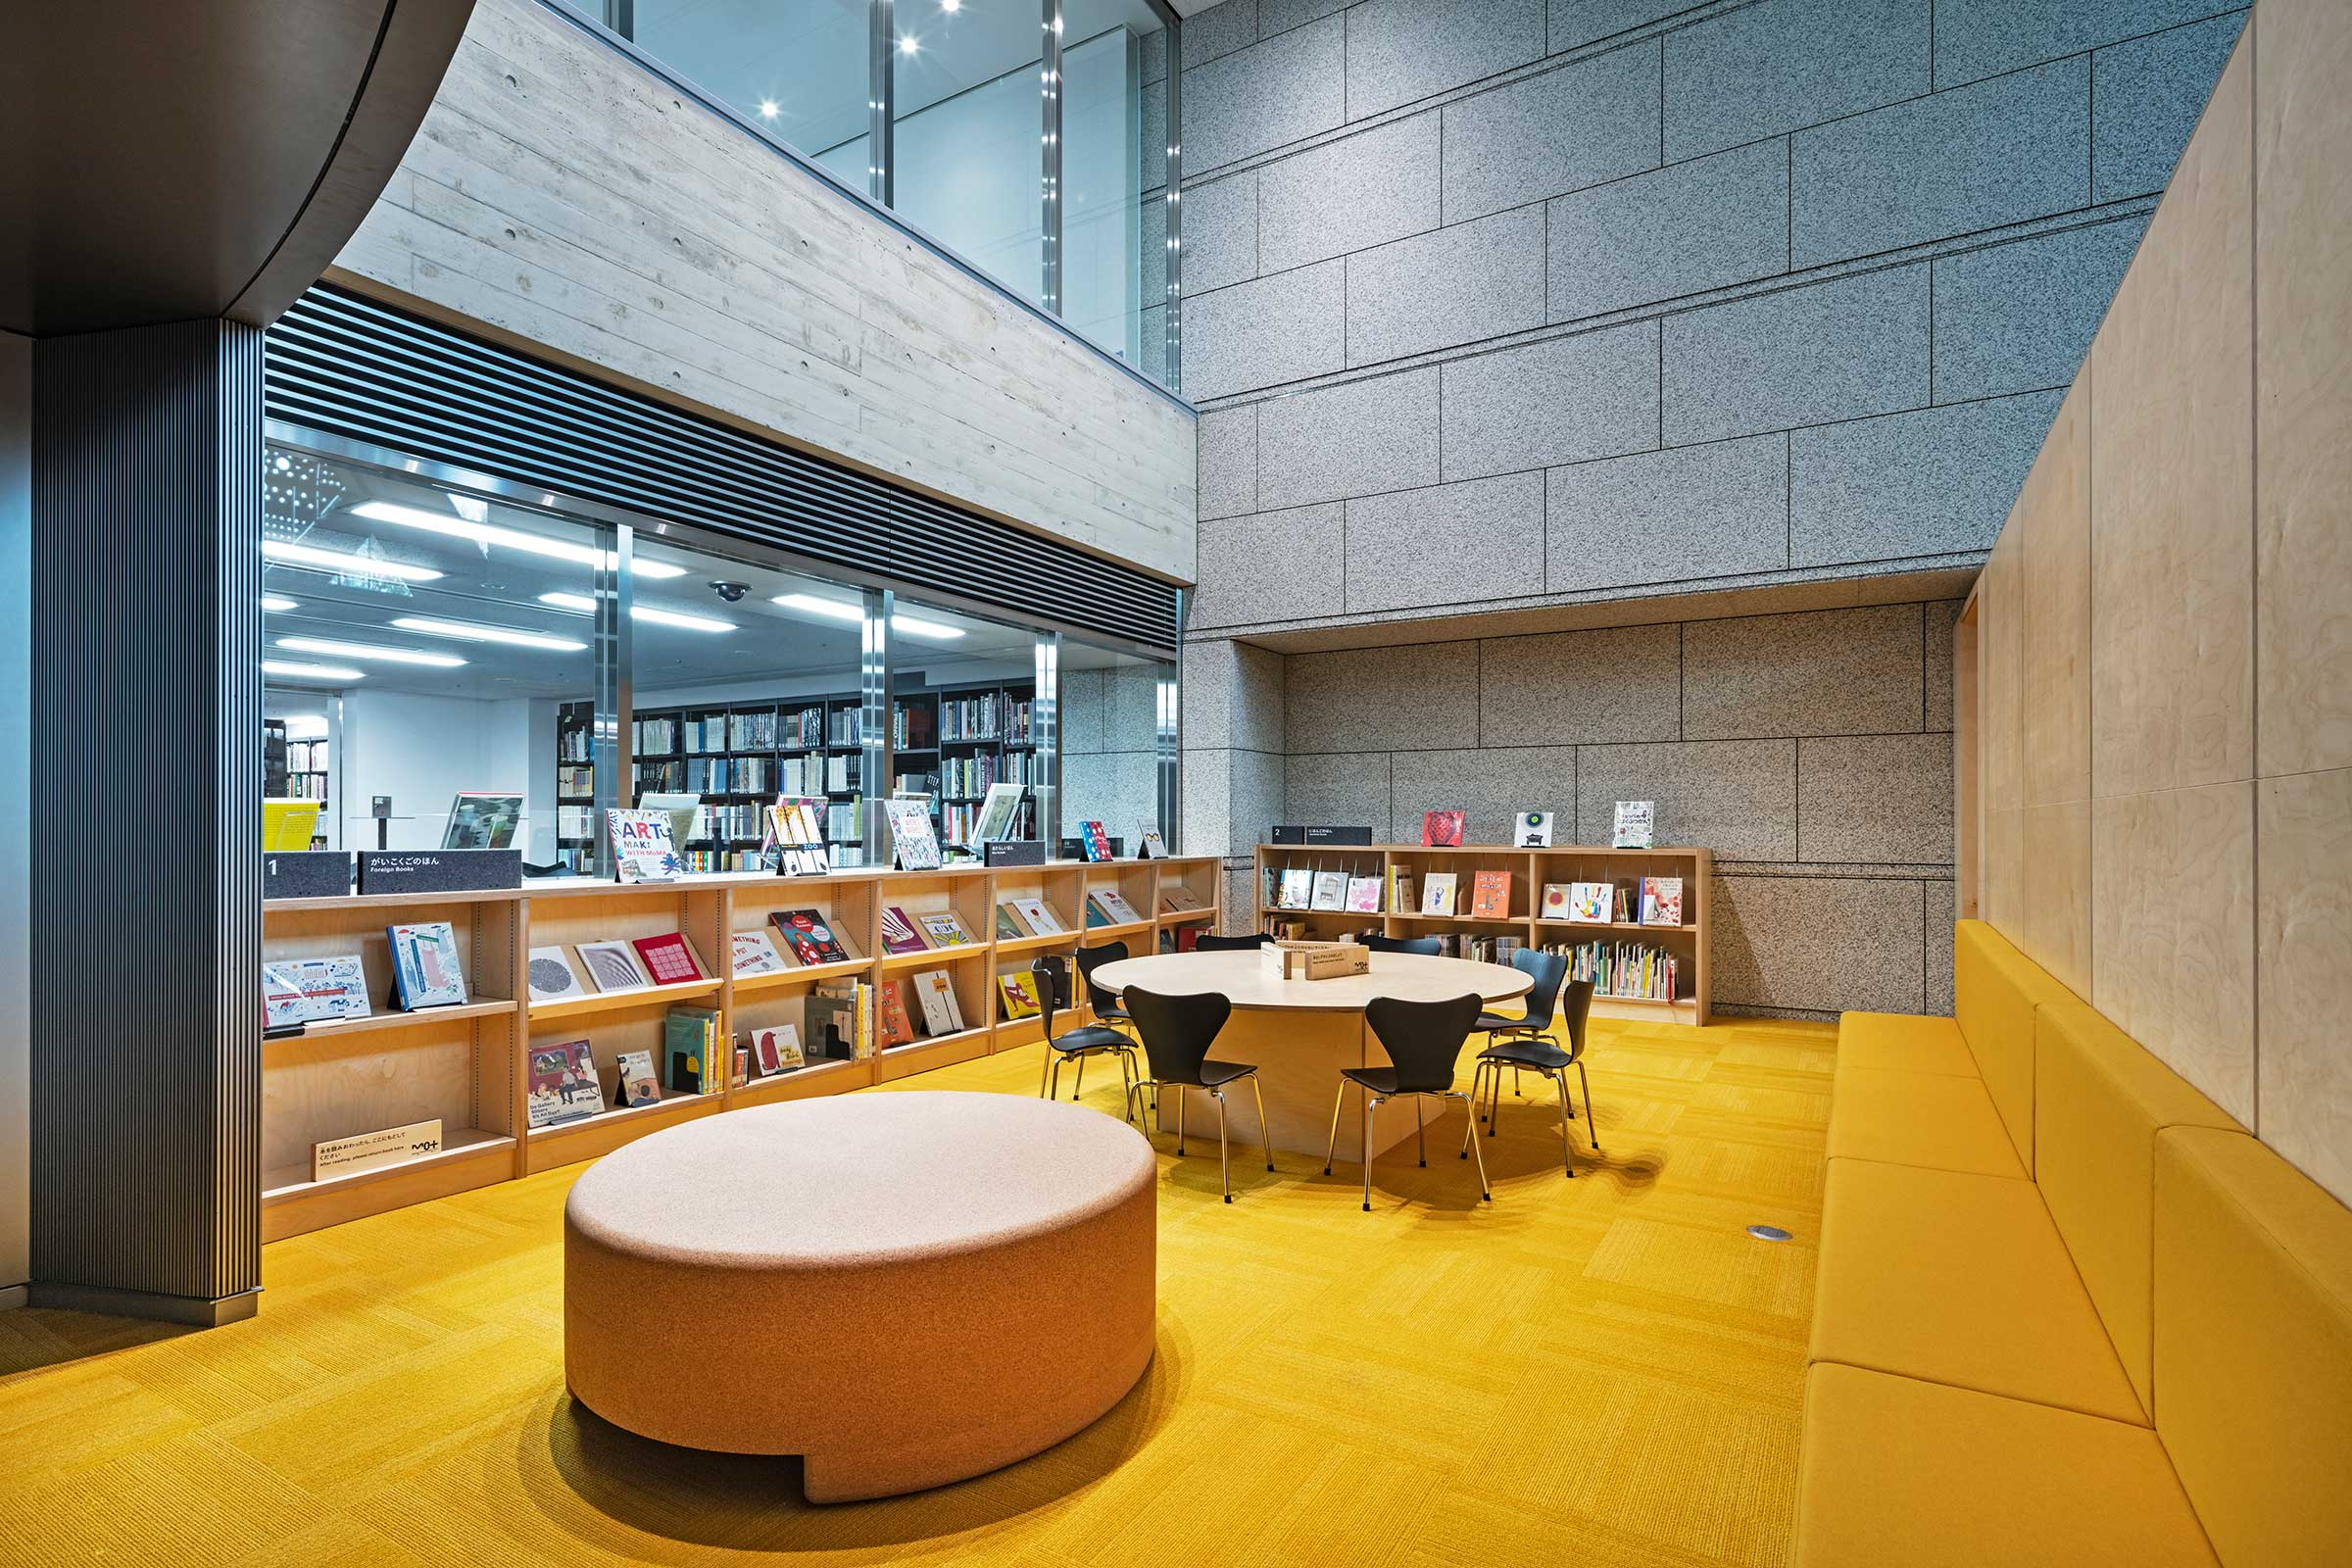 Art Library for Children. Image by Kenta Hasegawa